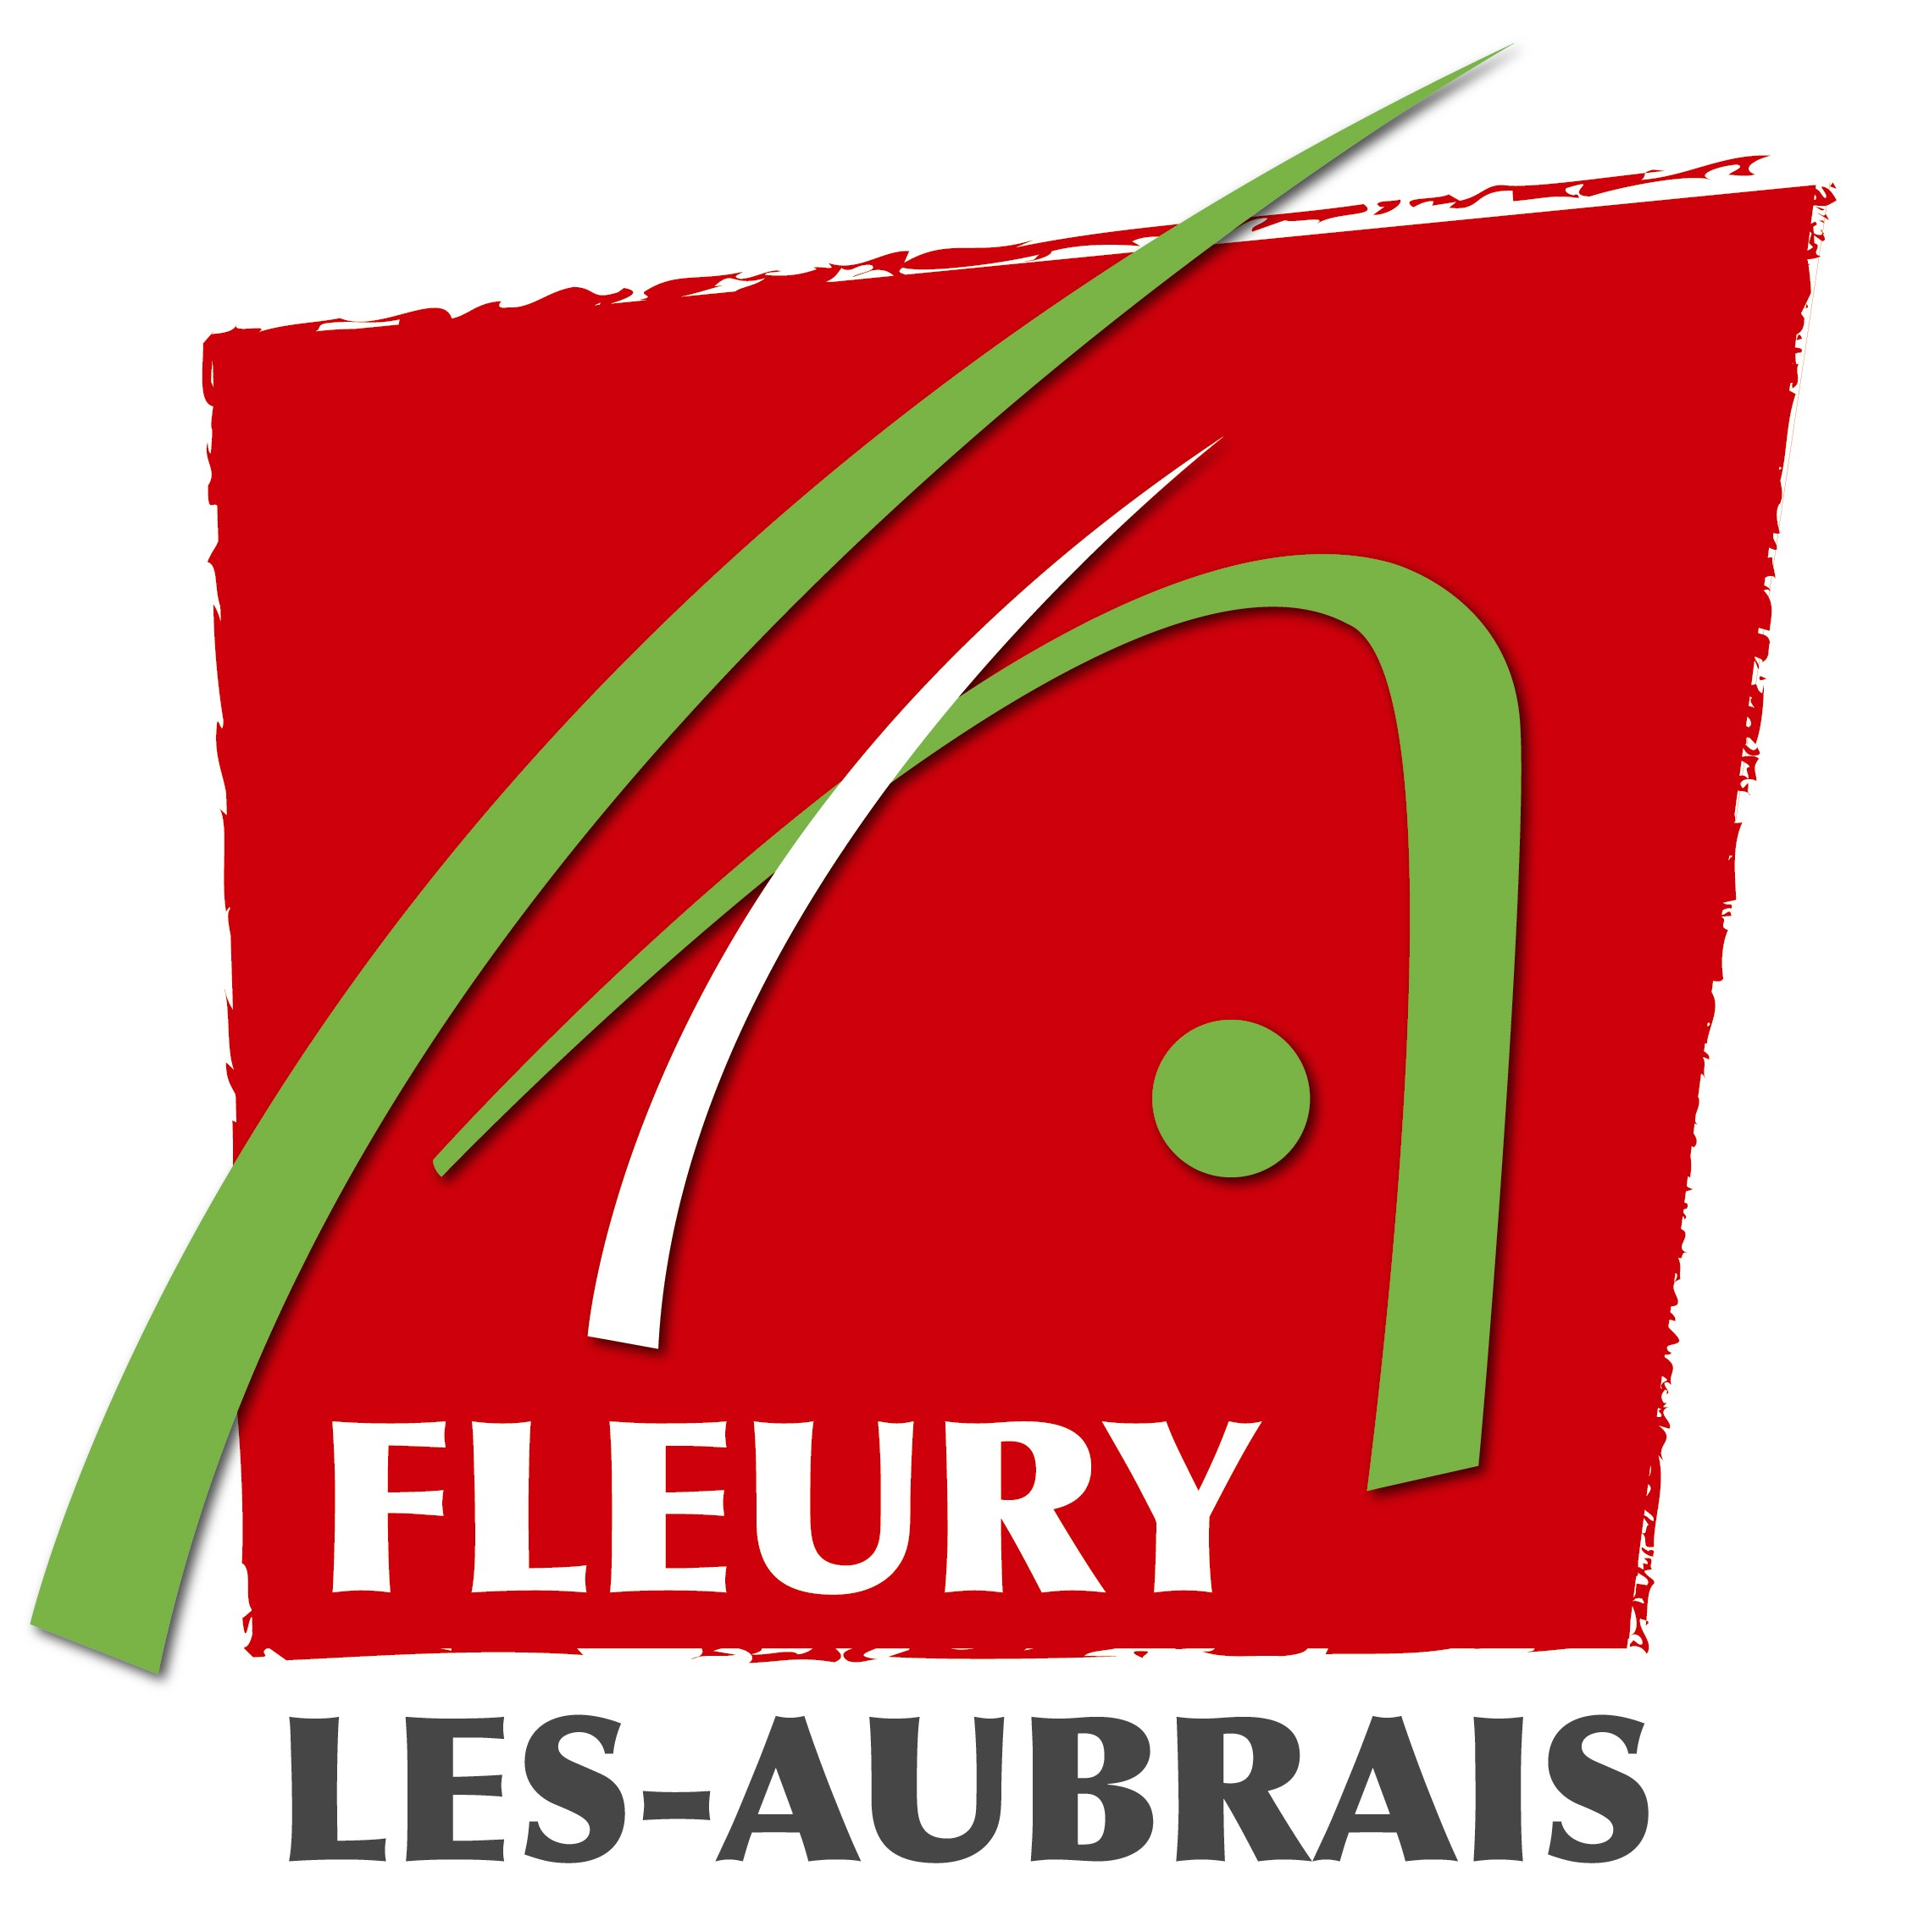 mairie fleury les aubrais informations commune de fleury. Black Bedroom Furniture Sets. Home Design Ideas